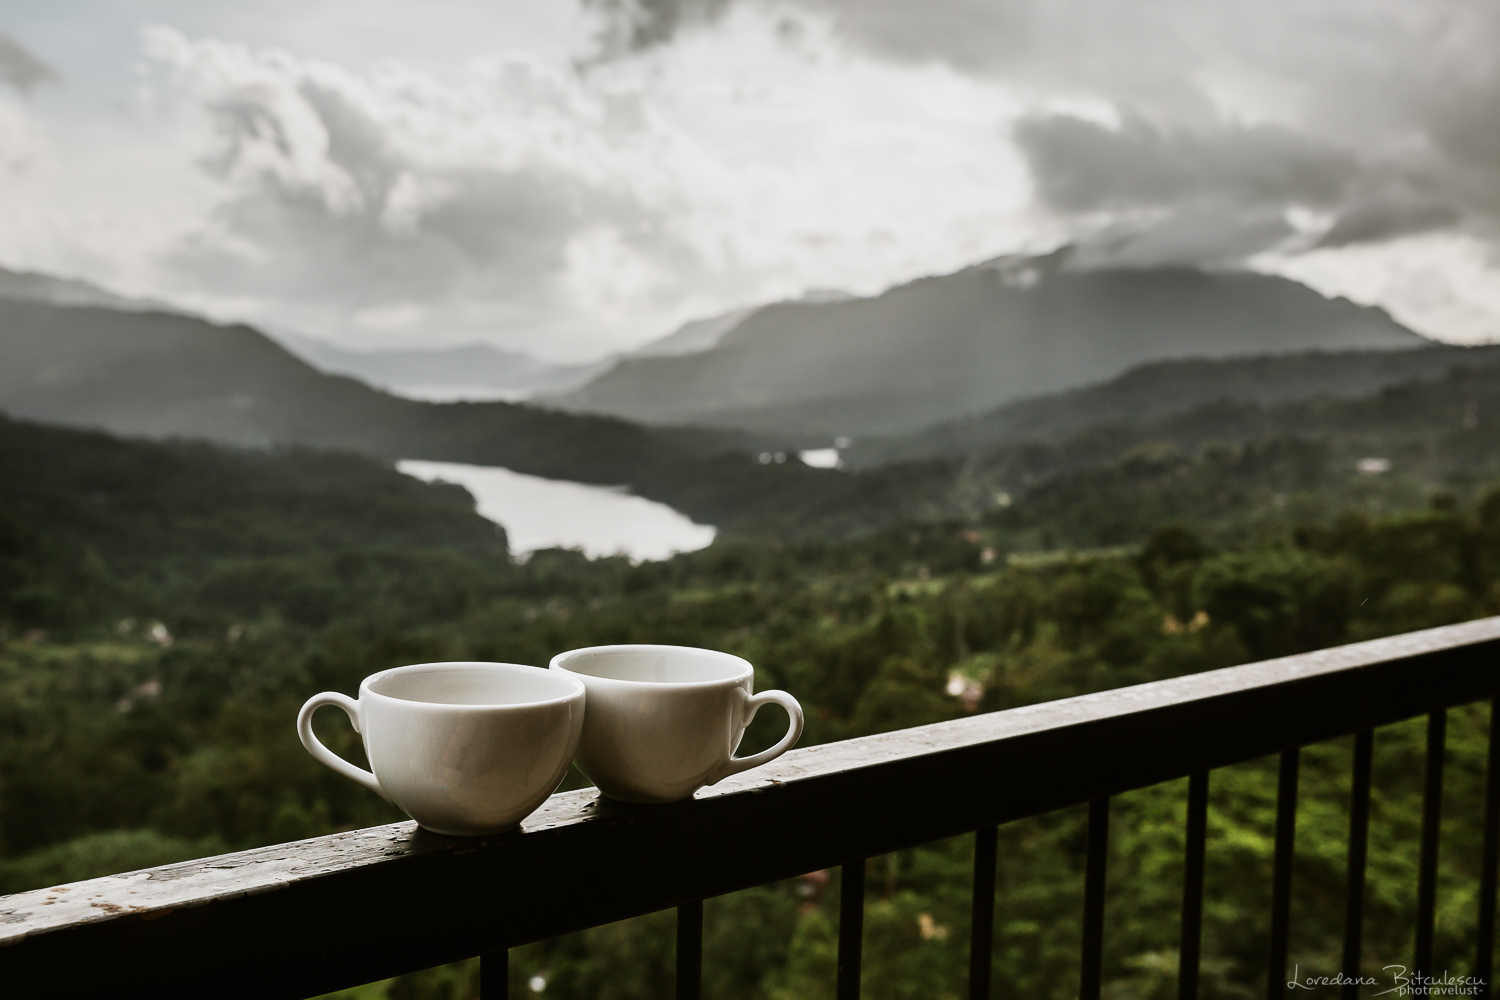 The view over the valley from the Tea Bush Factory, Nuwara Eliya